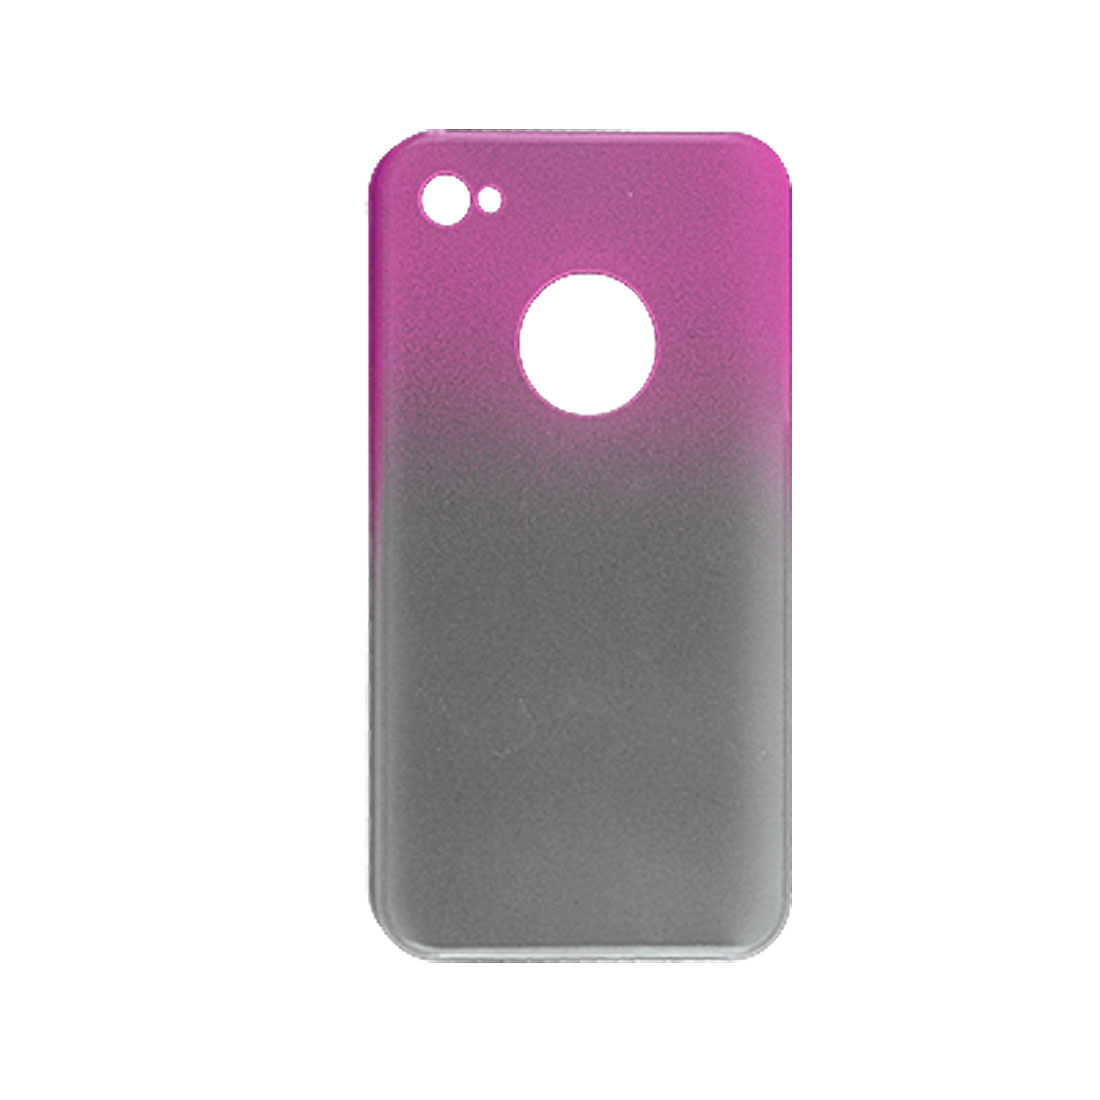 Dual Colors Anti Glare Rubberized Hard Plastic Back Case for iPhone 4 4G